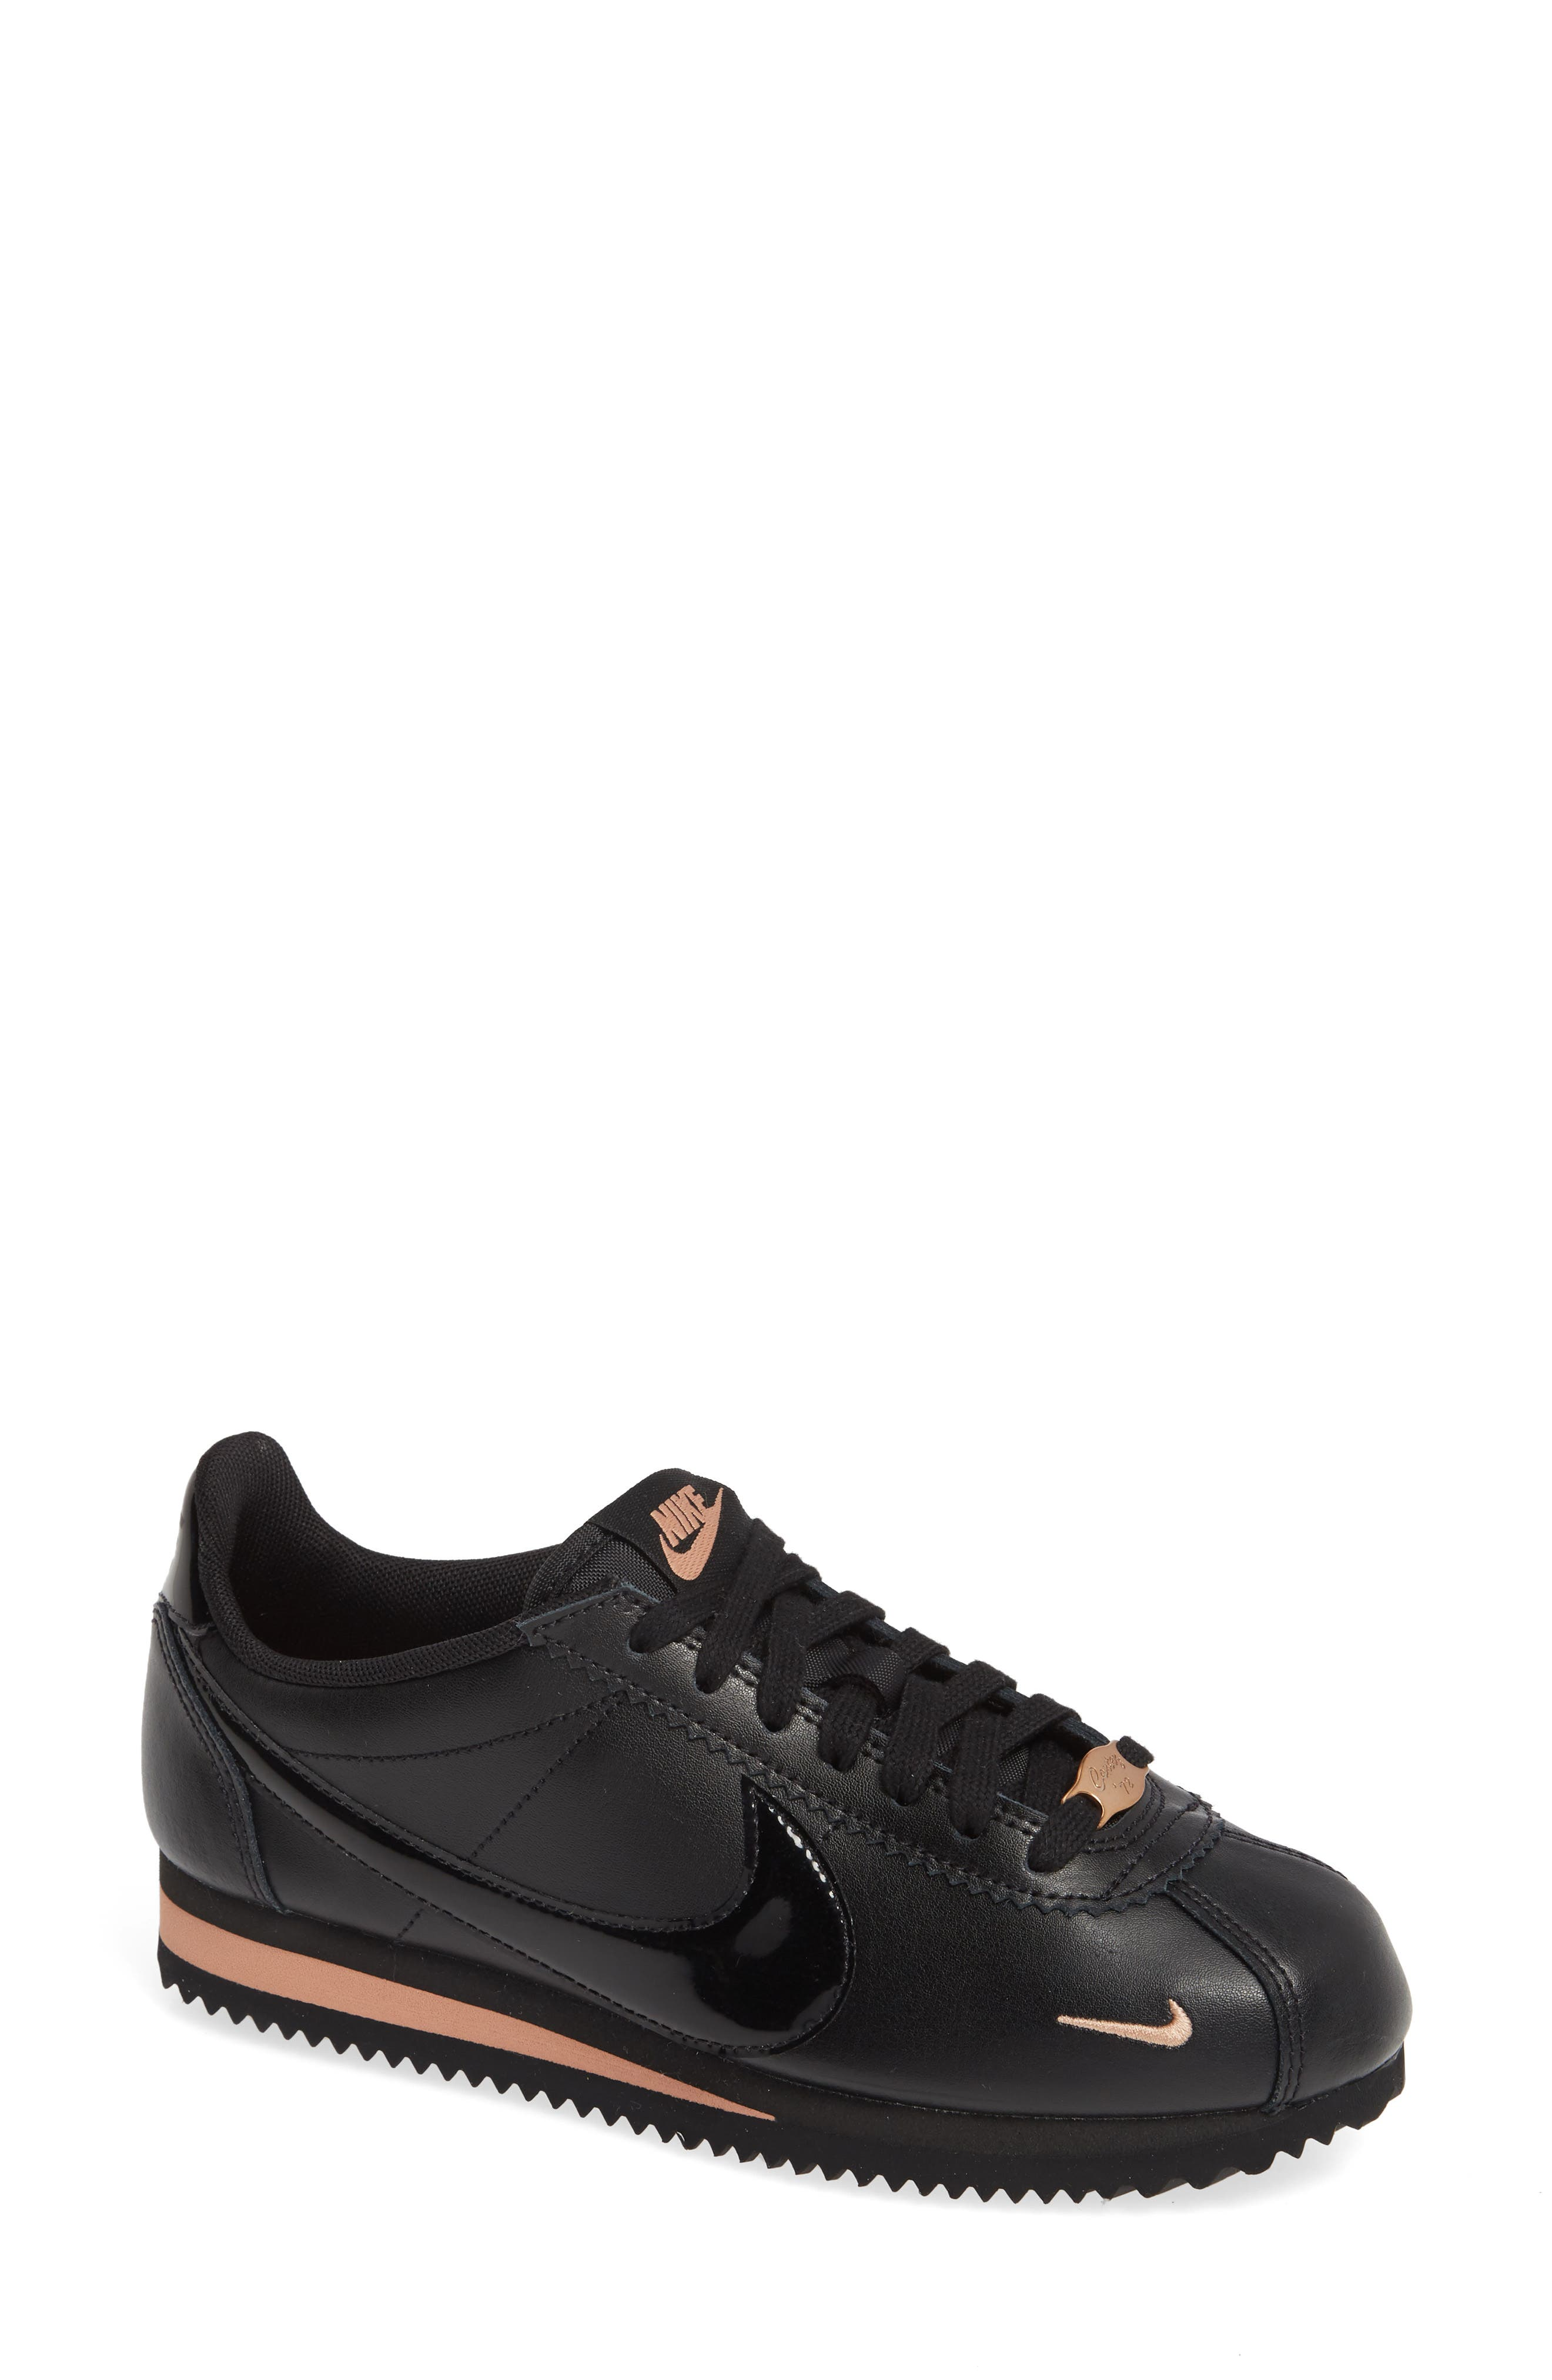 Classic Cortez Premium XLV Sneaker, Main, color, BLACK/ BLACK/ ROSE GOLD